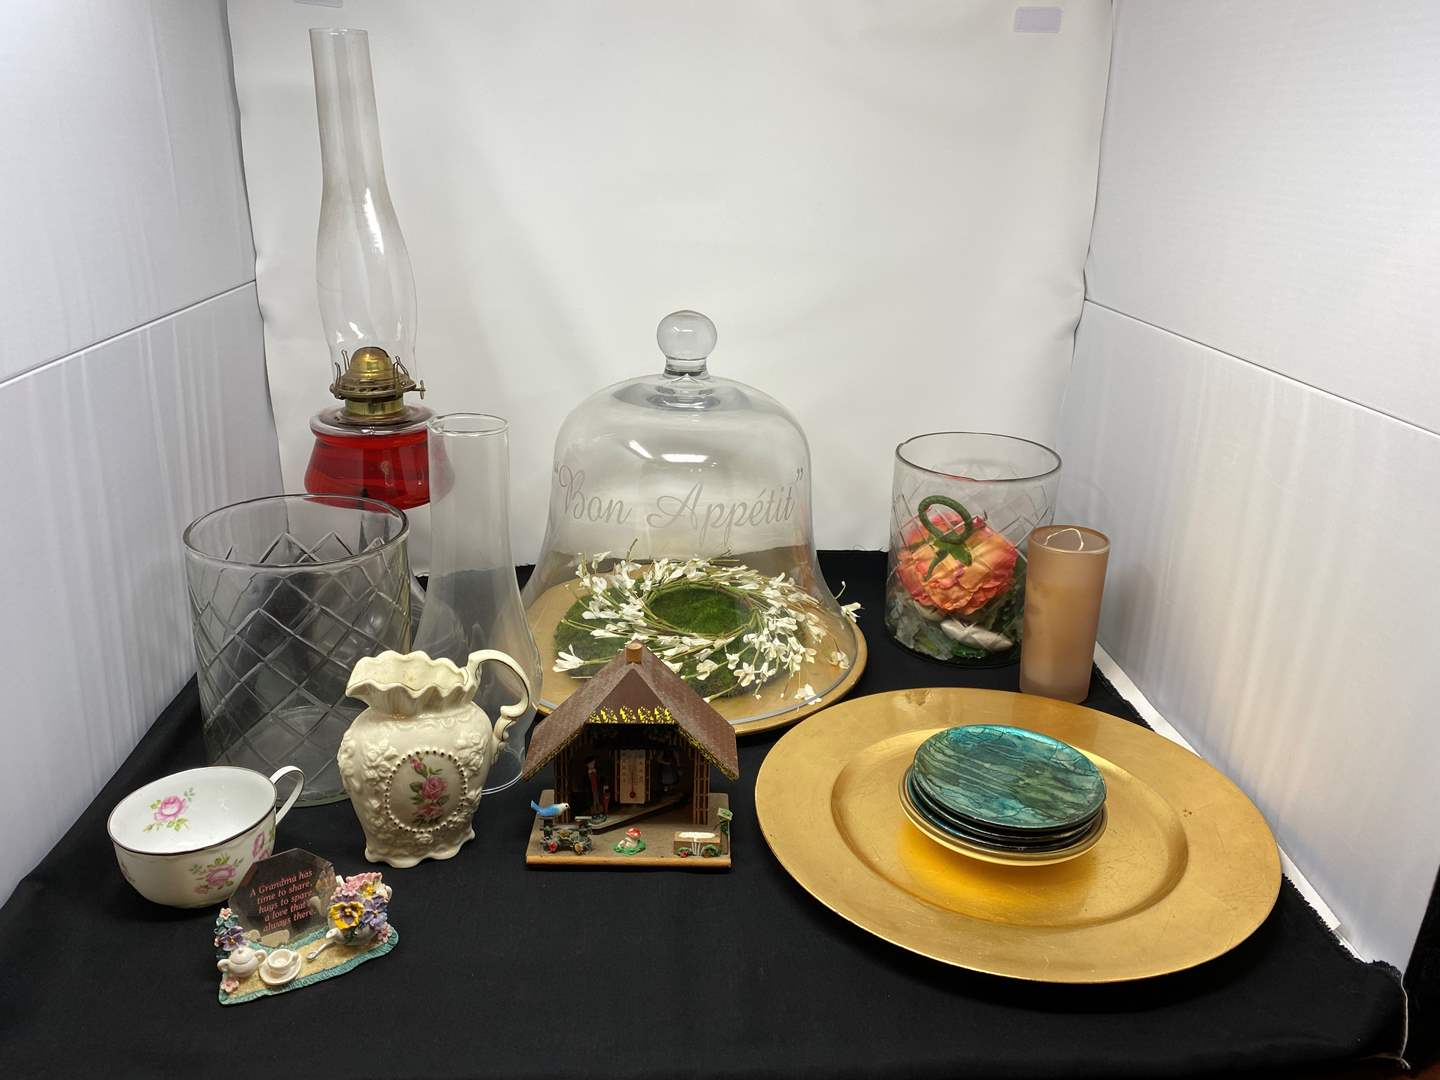 Lot # 29 - Small Selection of Home Decor & Oil Lamp (main image)